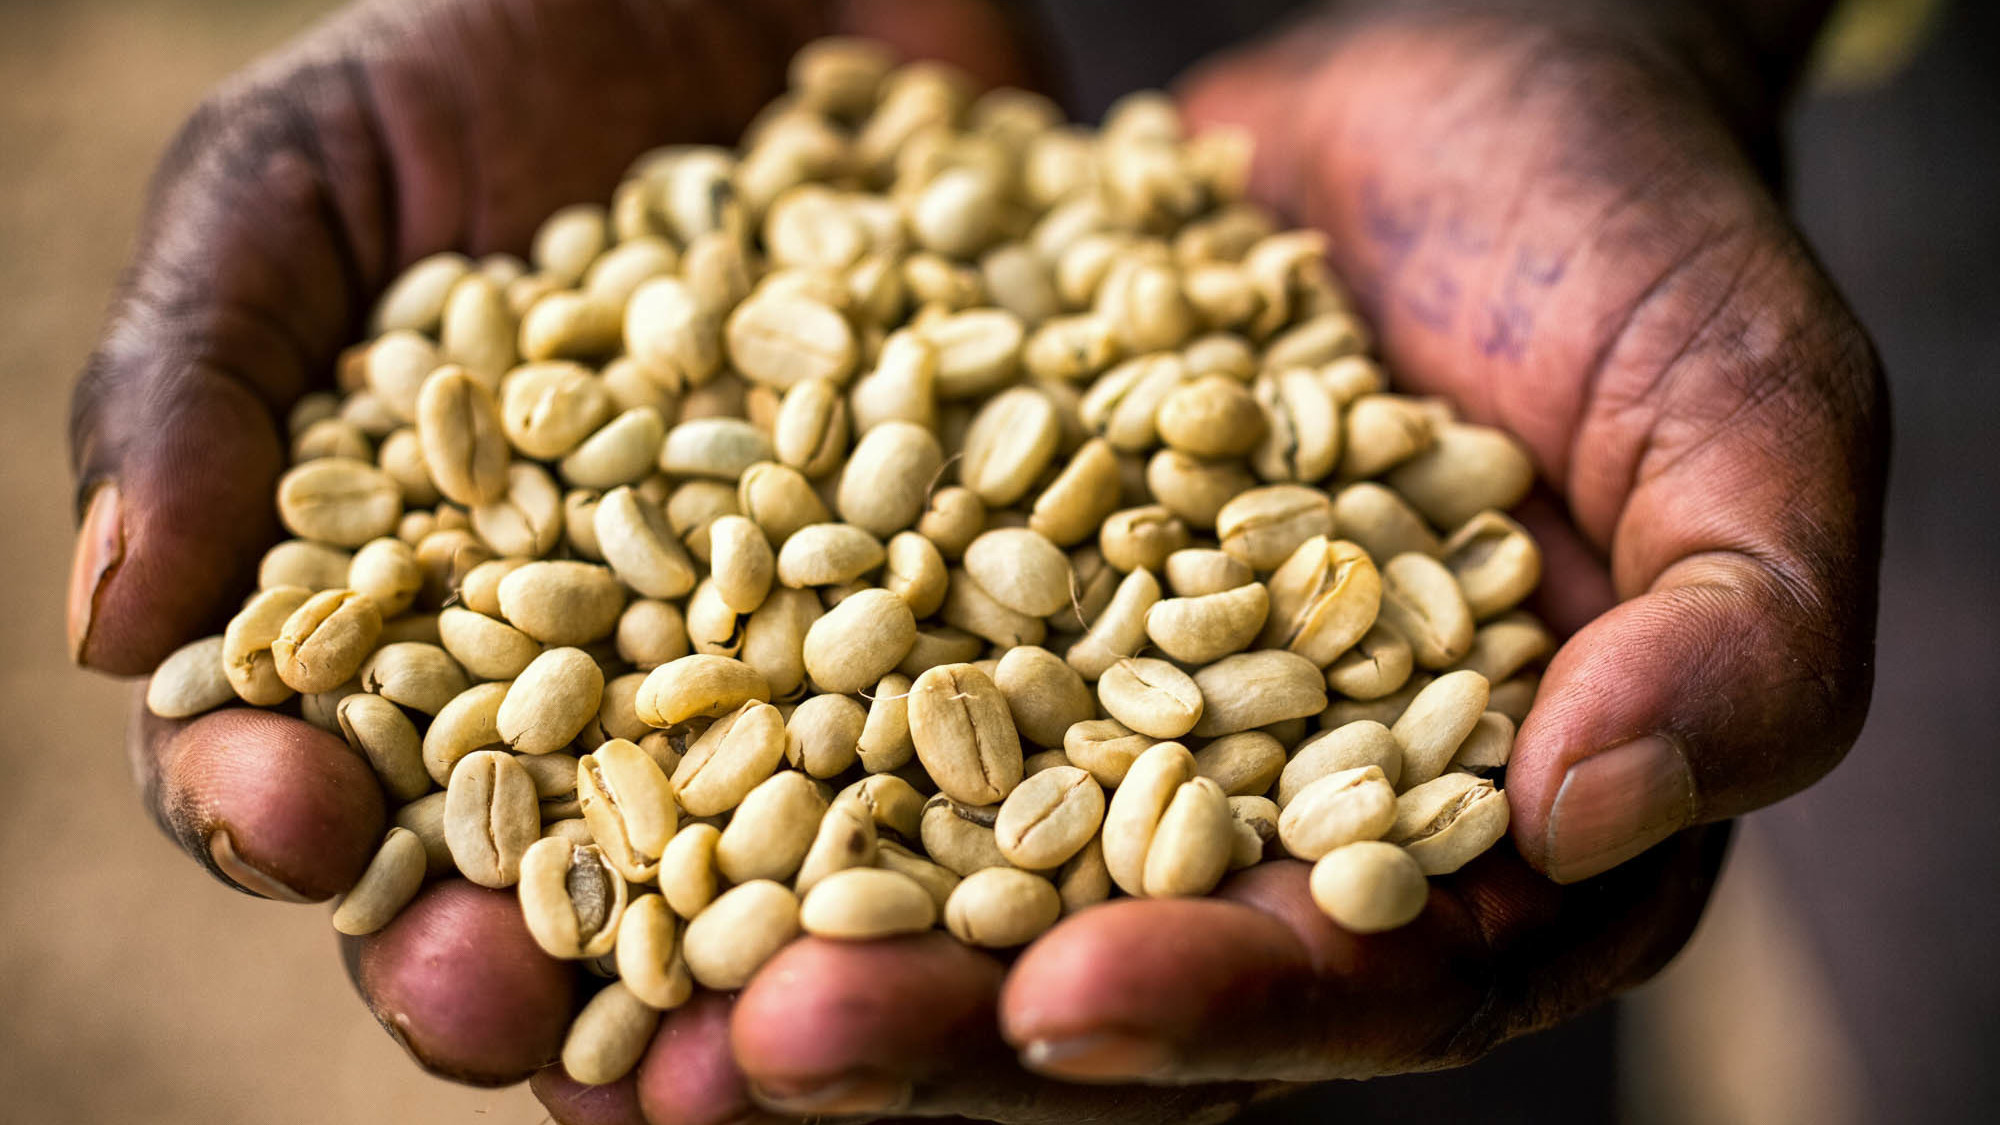 Coffee is thought to have originated in Ethiopia. Coffea arabica, or coffee Arabica, the species that produces most of the world